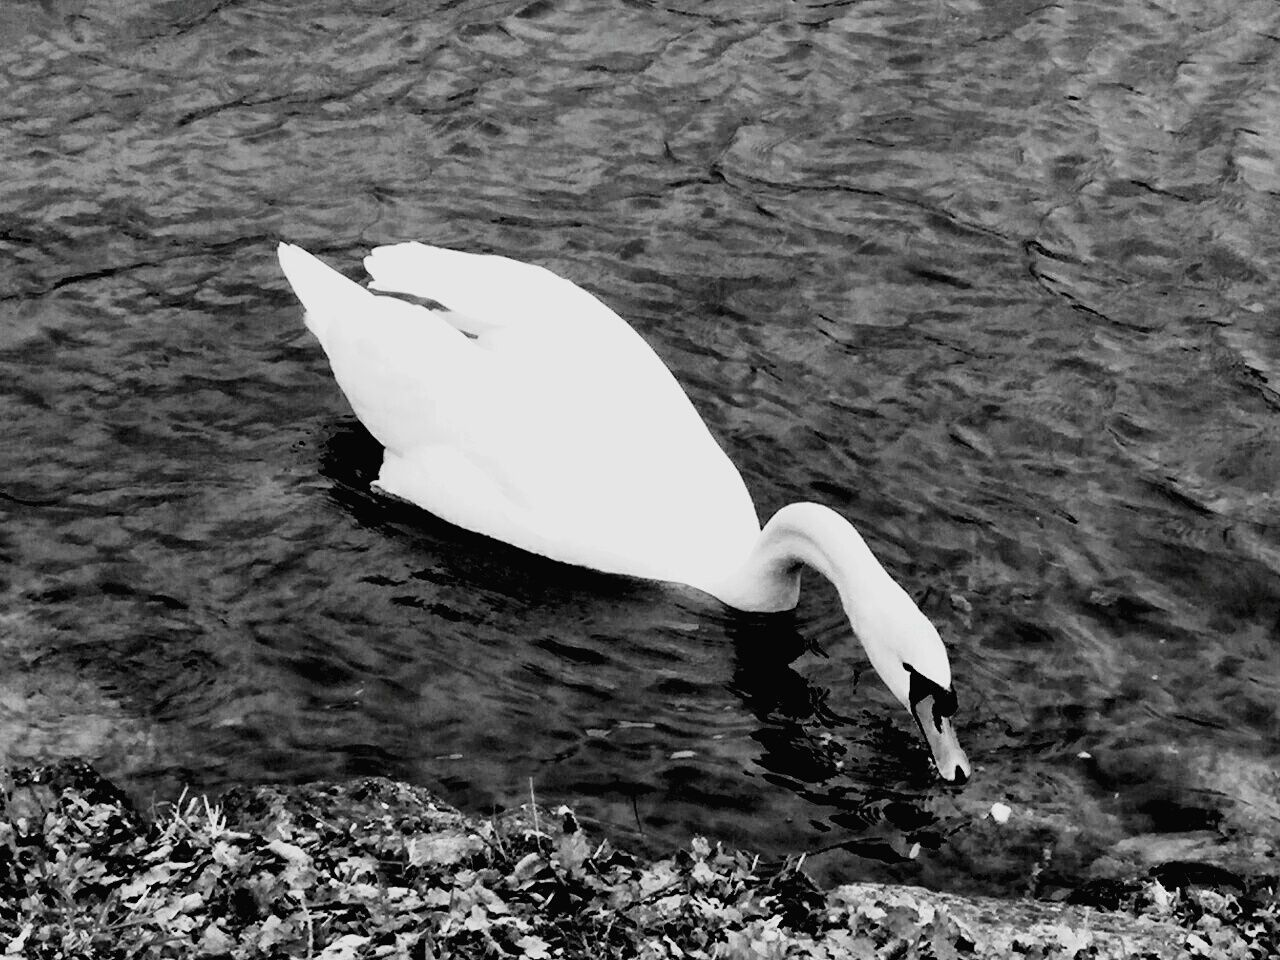 animal themes, animals in the wild, bird, one animal, white color, water, high angle view, nature, animal wildlife, lake, no people, day, swan, great egret, outdoors, beak, close-up